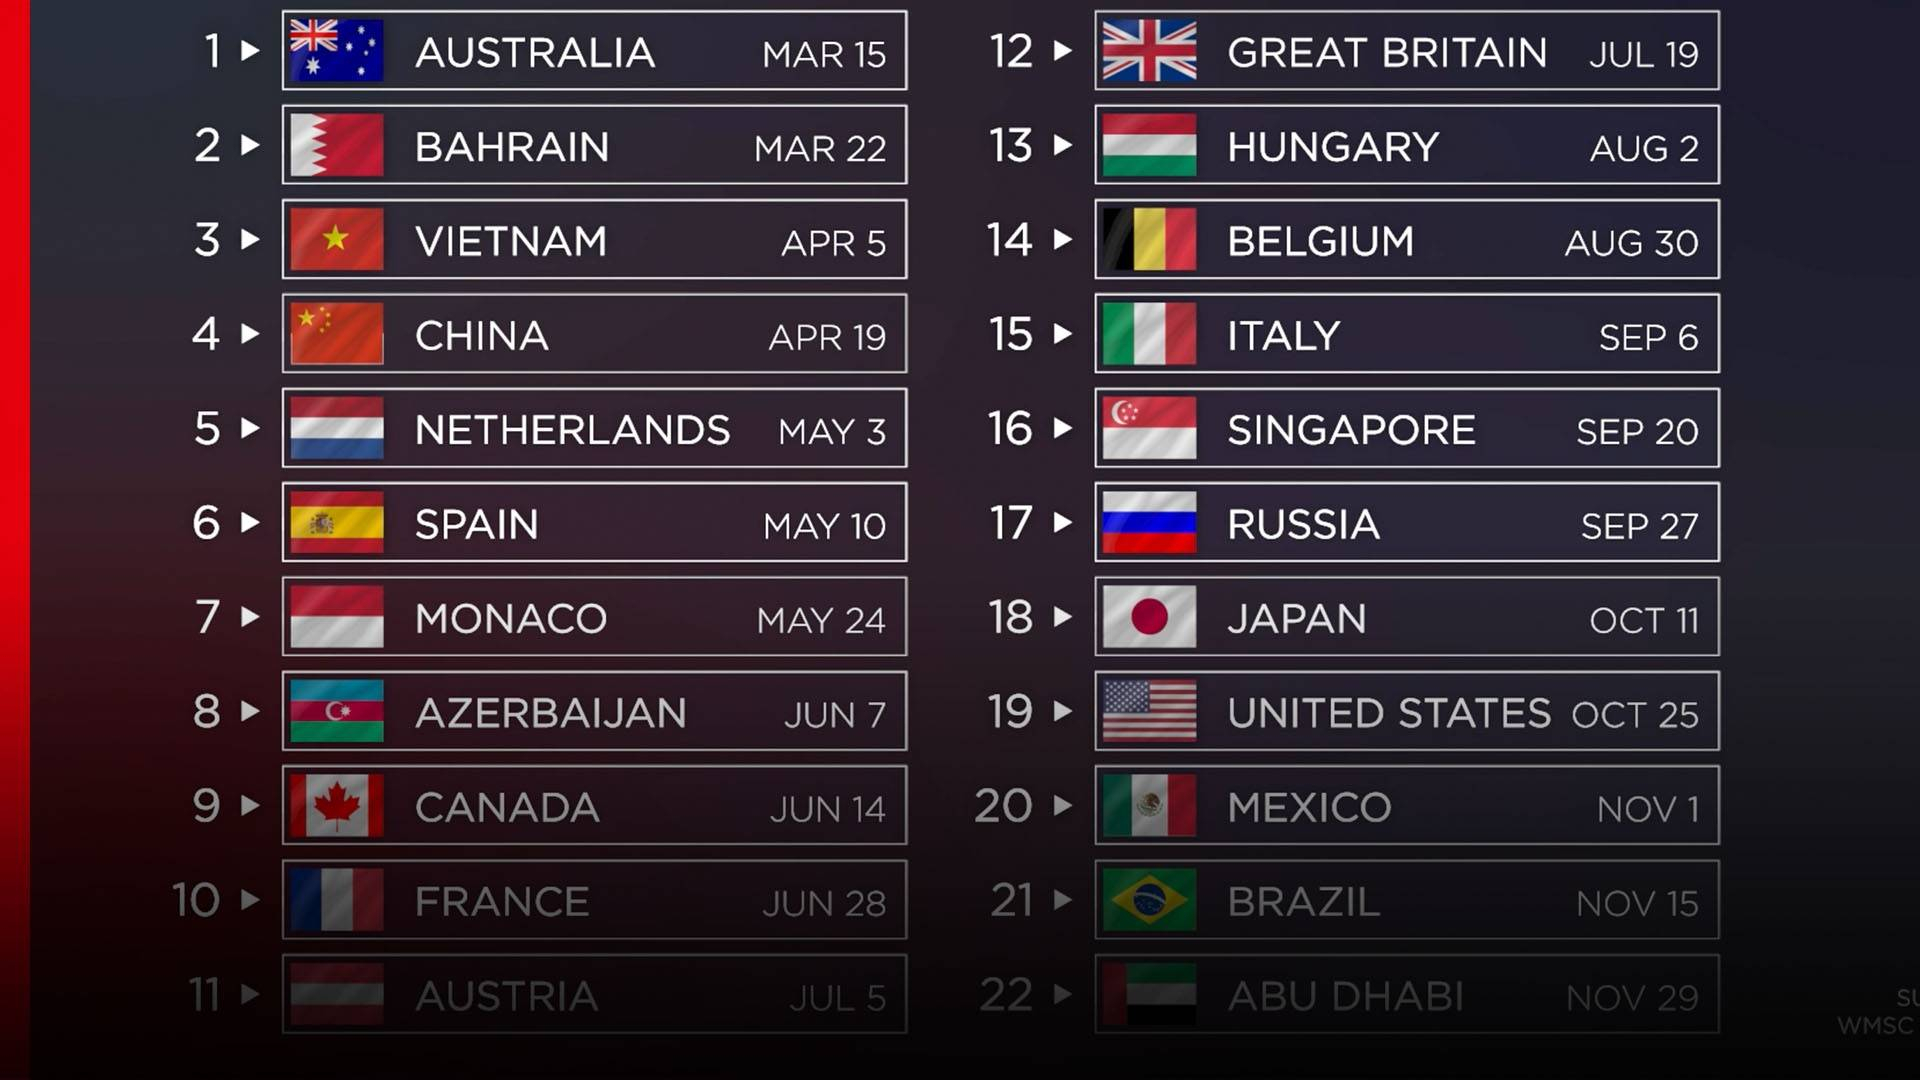 2020 F1 Calendar Revealed - What's New?